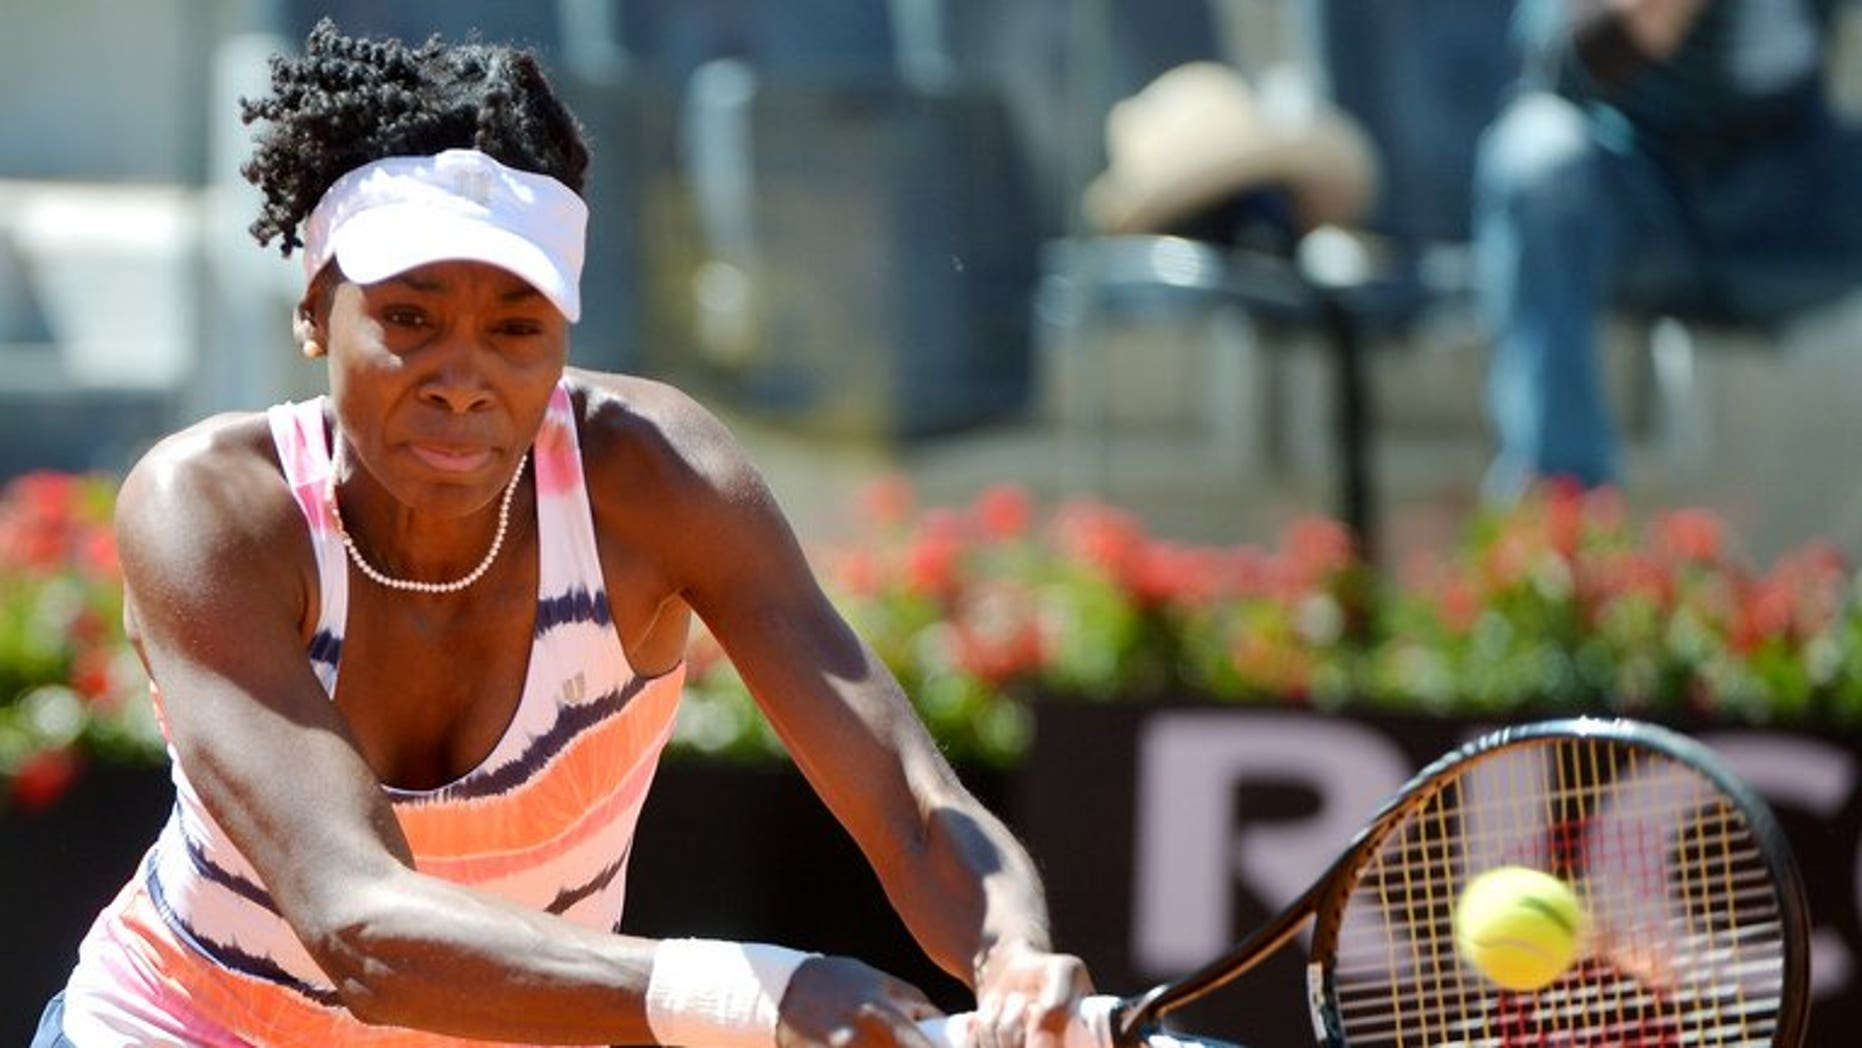 Venus Williams of the United States returns a forehand to Australian Laura Robson during the WTA Italian Open in Rome on May 13, 2013. Venus has pulled out of this year's Wimbledon tournament because of an ongoing lower back injury.